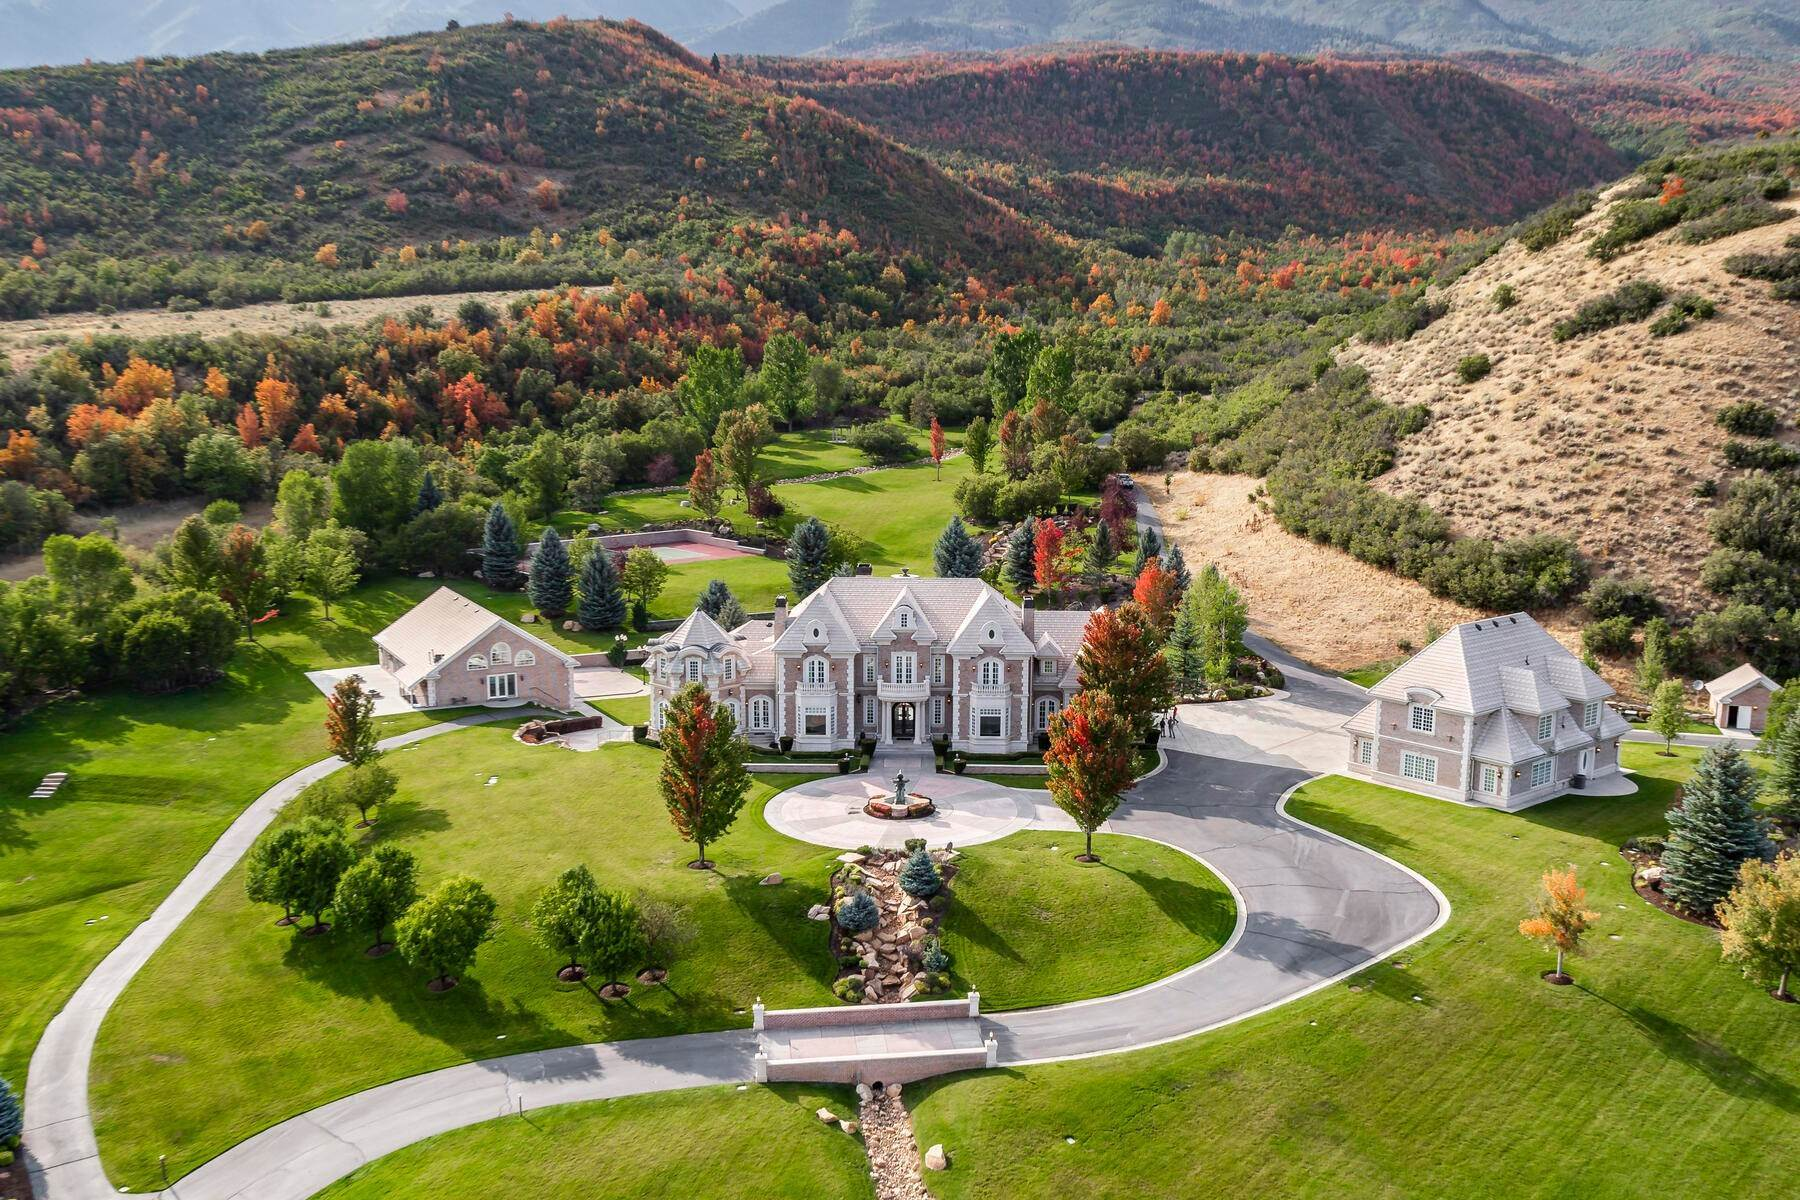 Farm and Ranch Properties for Sale at Hobble Creek Ranch—Luxury Estate on 3,387 Acres 533 N Left Fork Hobble Creek Cyn Springville, Utah 84663 United States